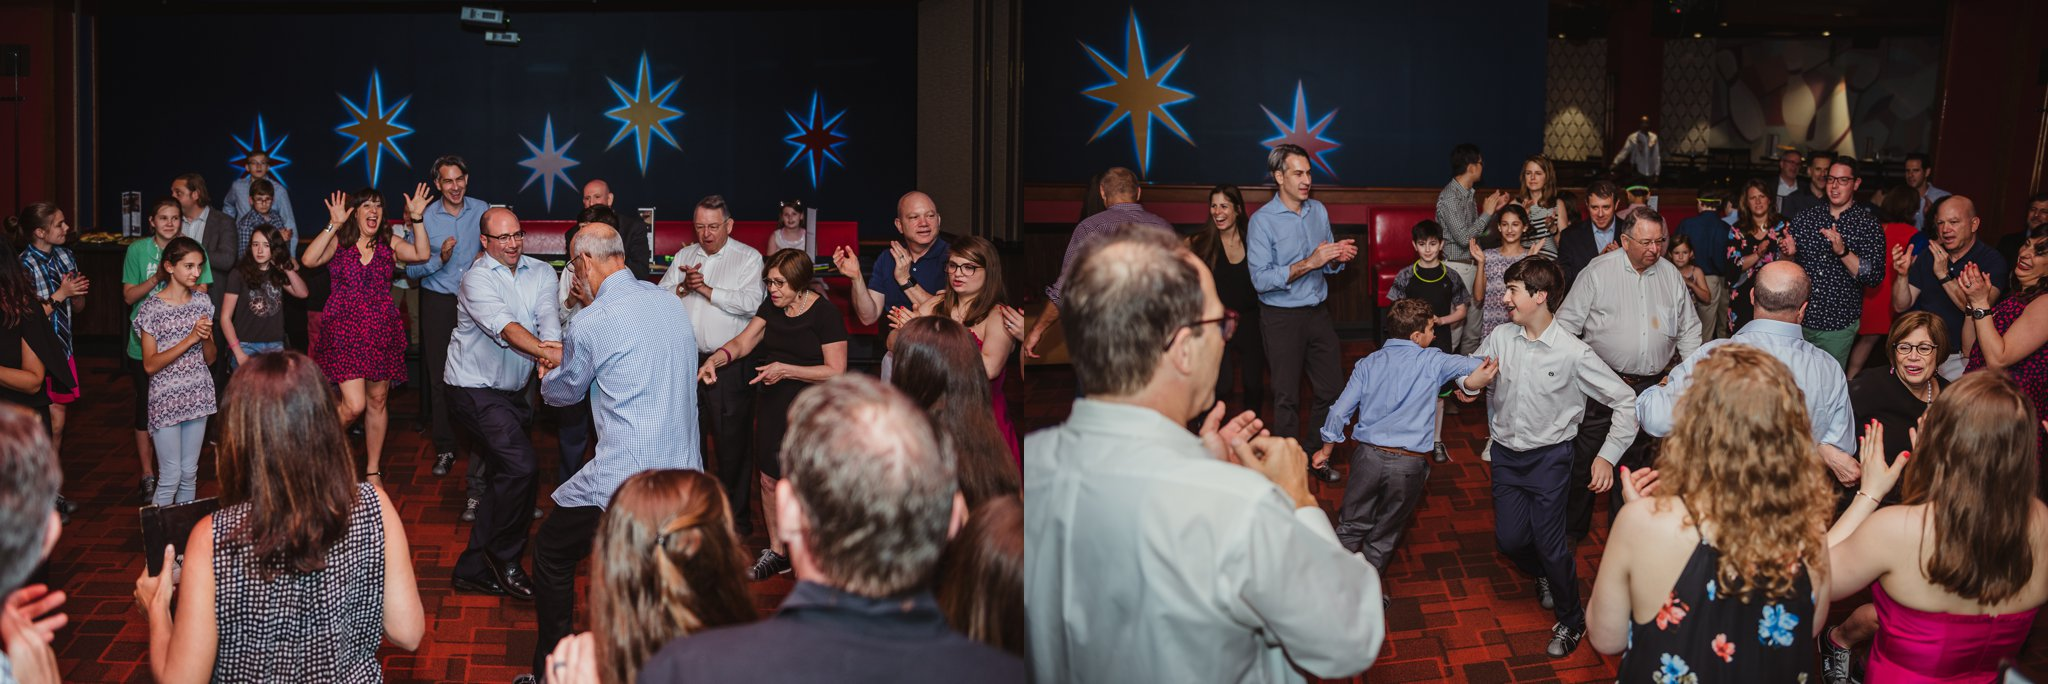 Friends and family dance together at the mitzvah reception at Kings in Raleigh, North Carolina, images by Rose Trail Images.